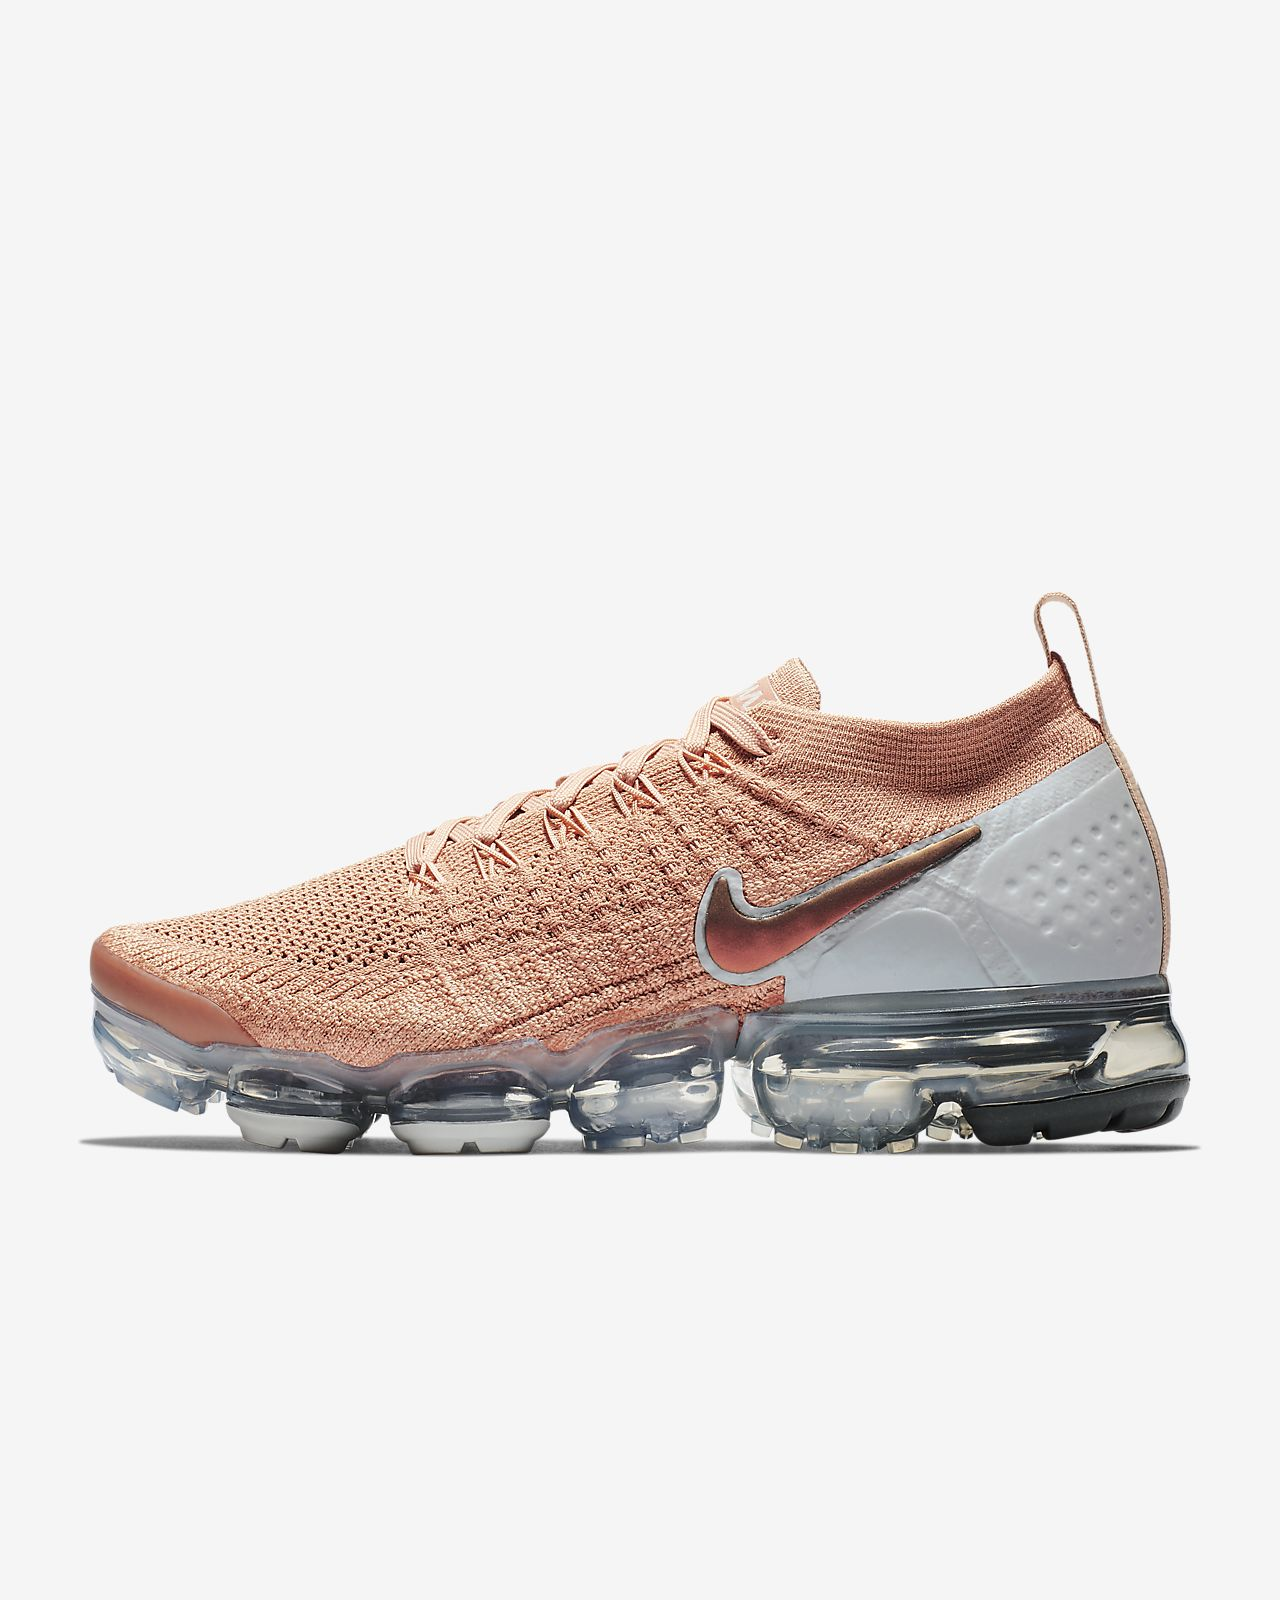 new product 0917d 71234 ... Nike Air VaporMax Flyknit 2 Women s Shoe